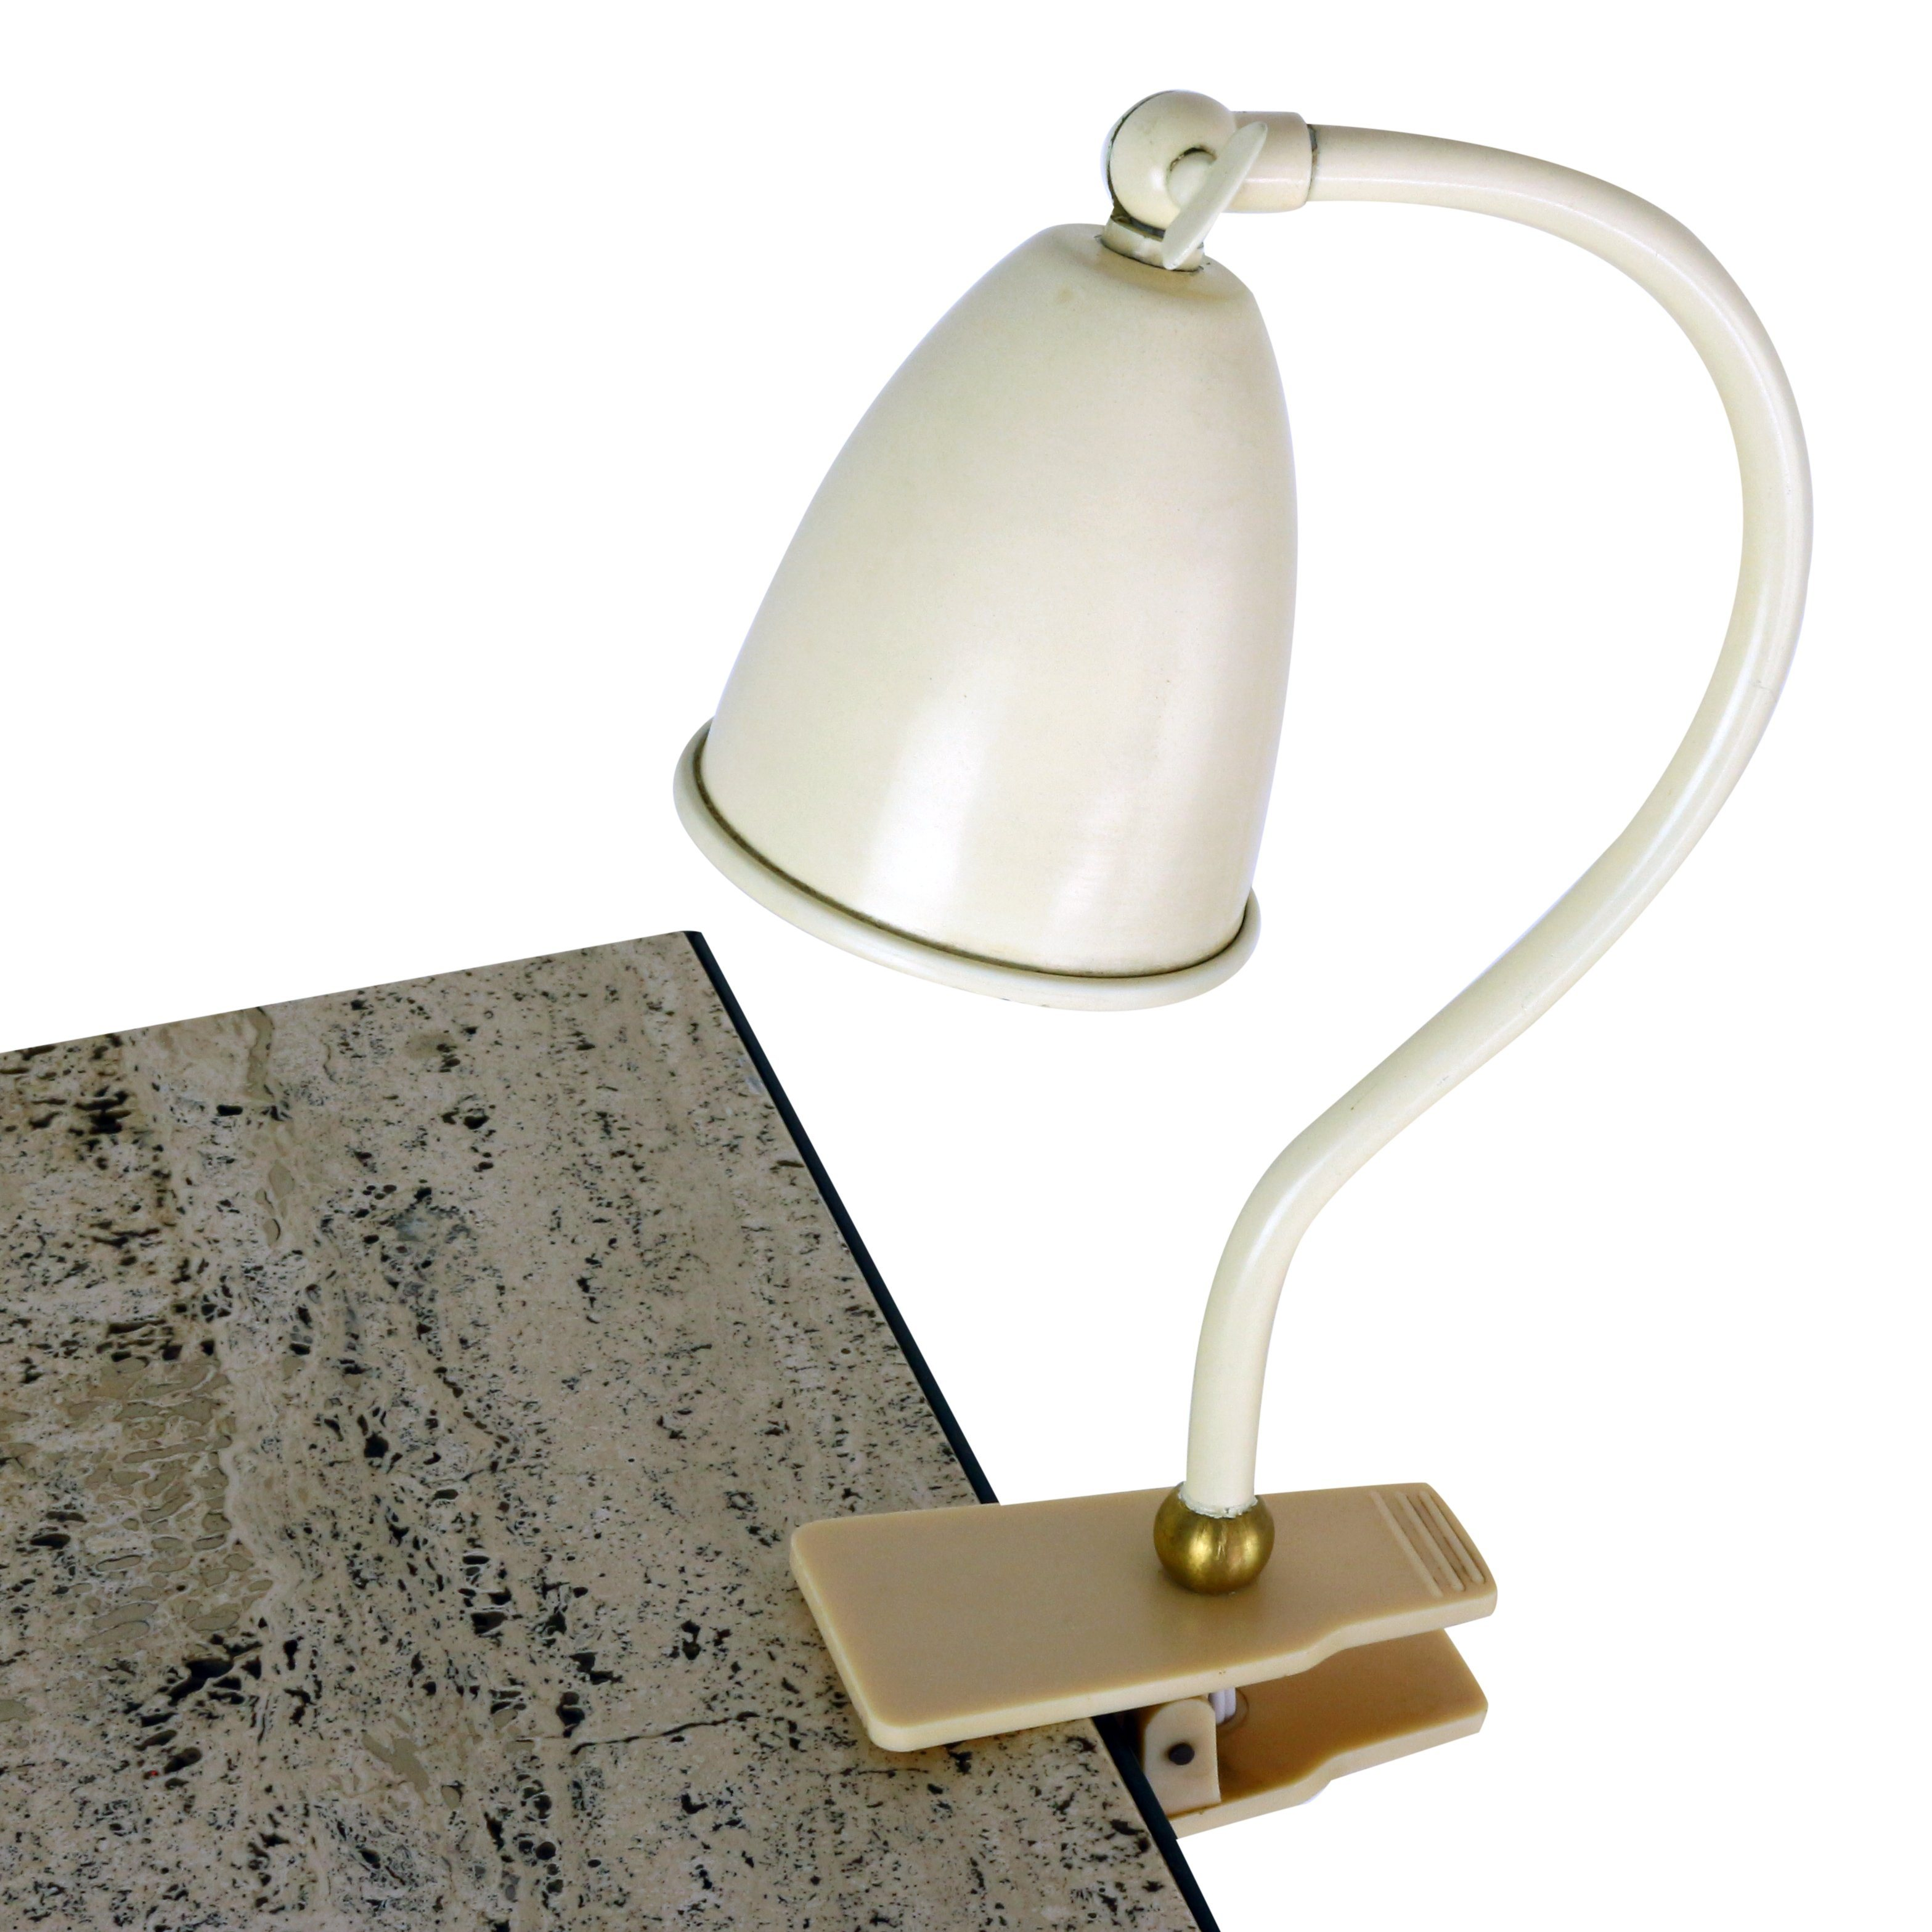 Small metal clamp desk light 1950s 1187 small metal clamp desk light 1950s publicscrutiny Image collections